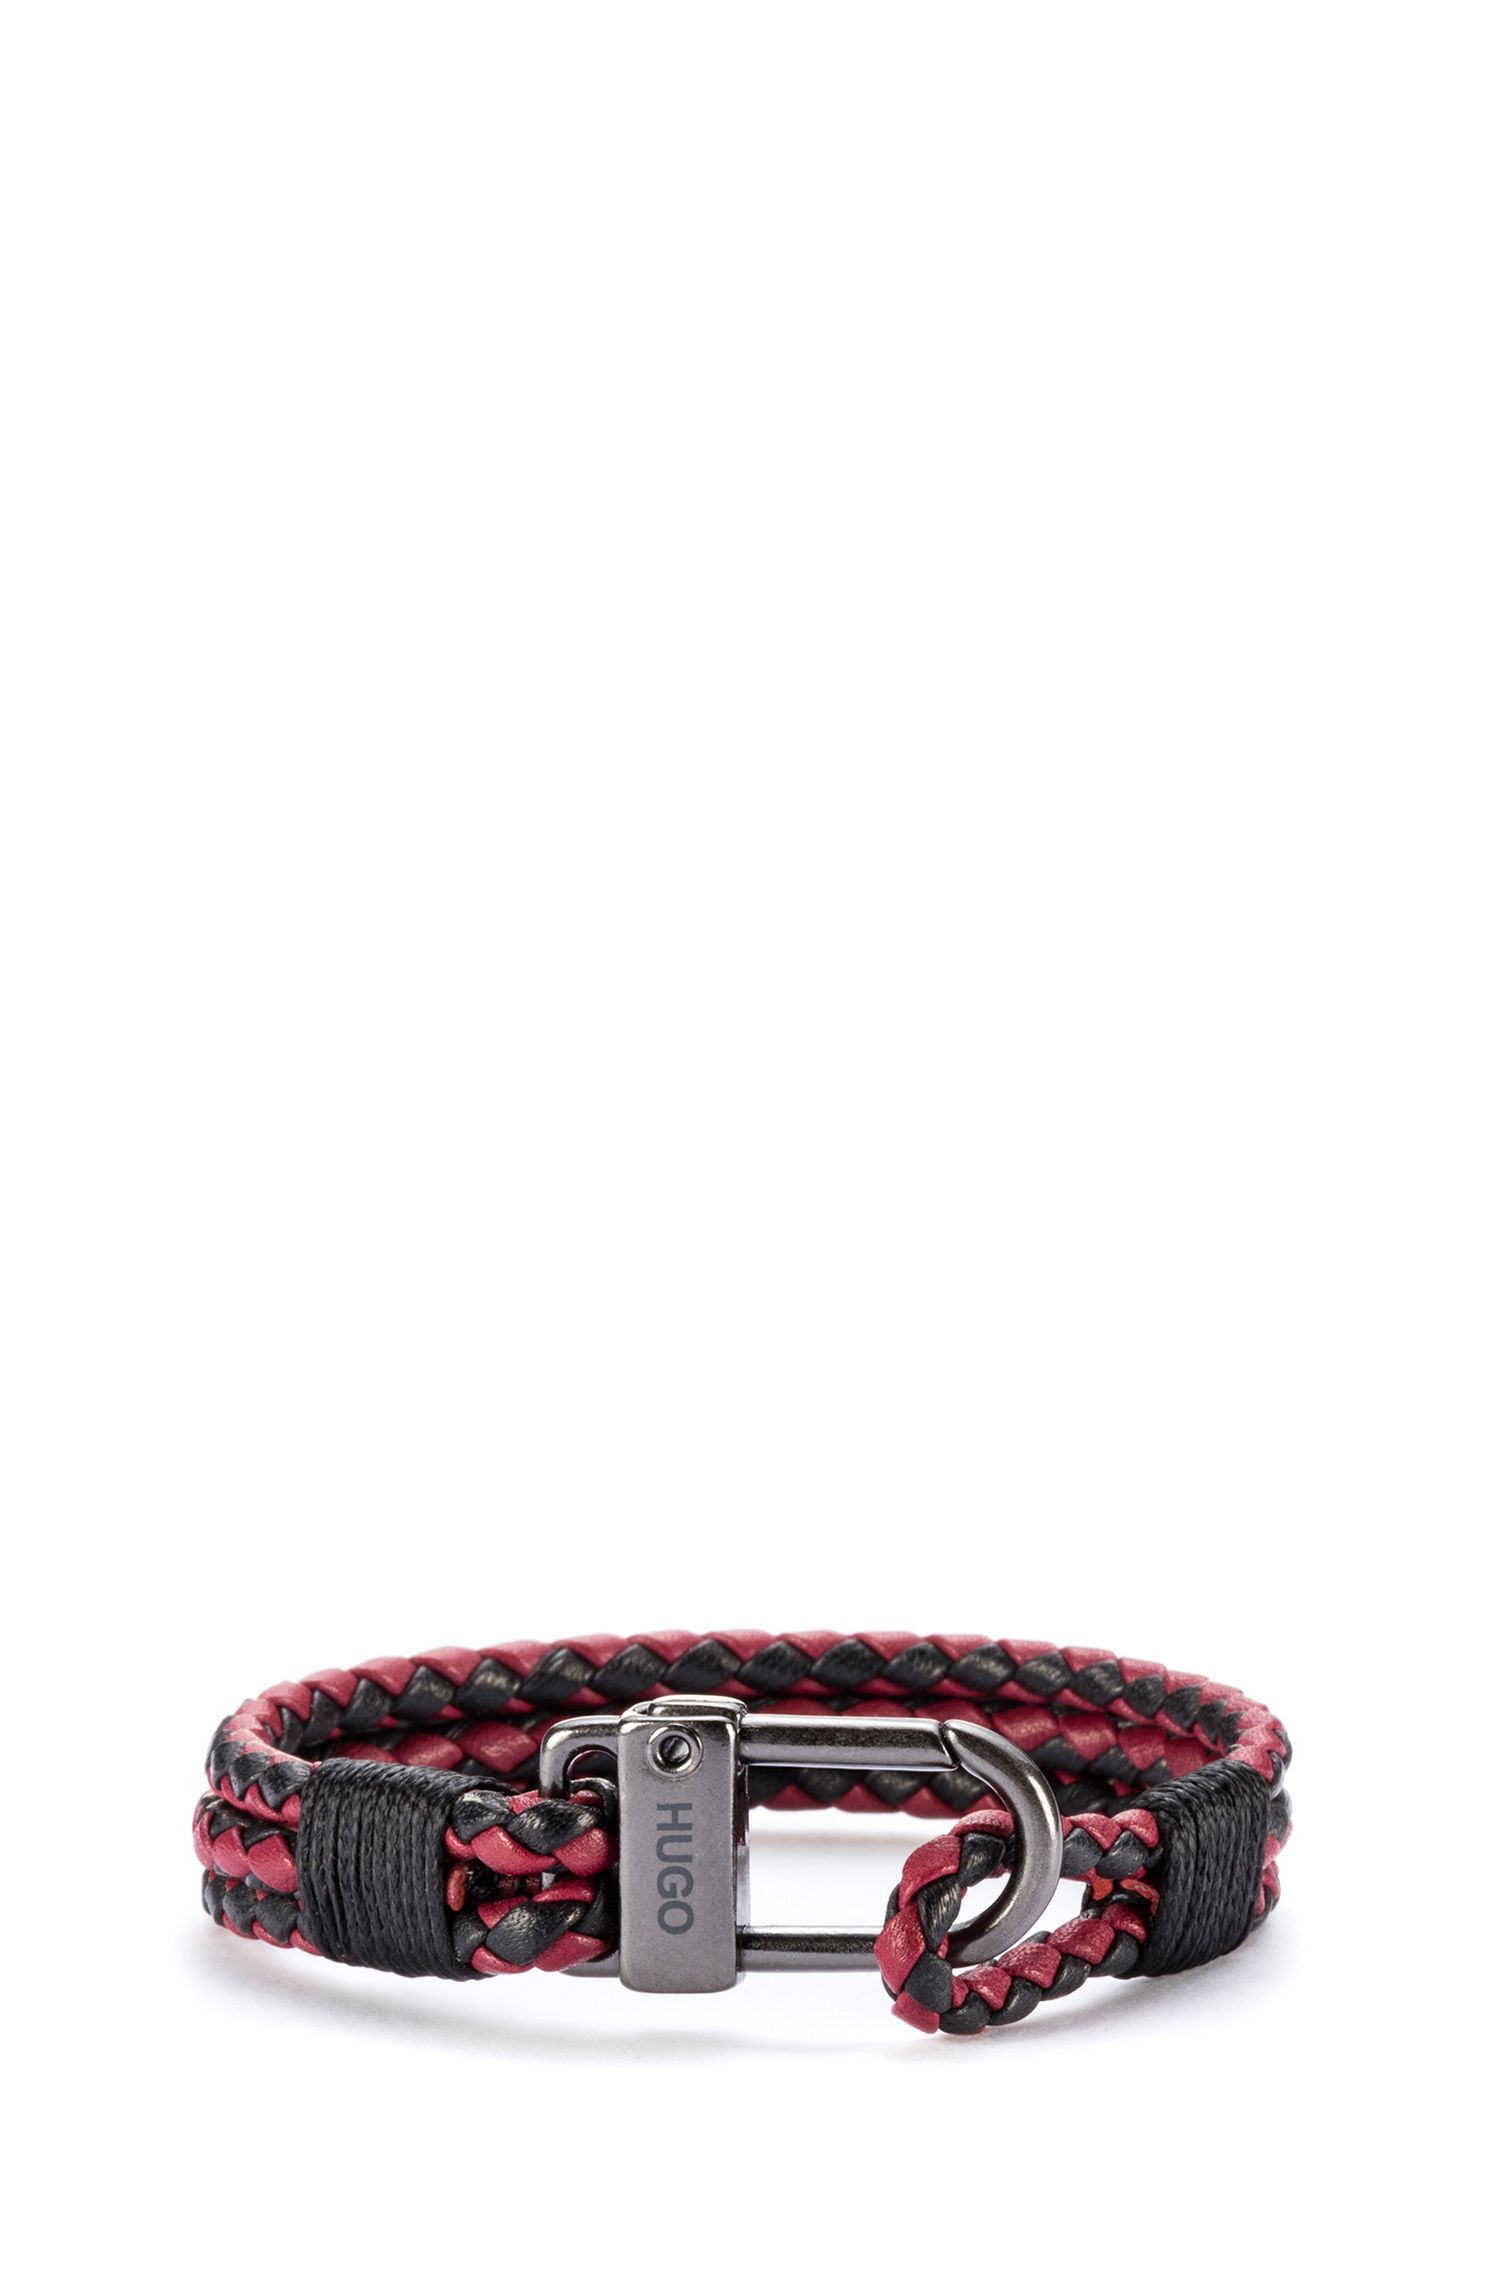 Braided Leather Bracelet | E-Hook